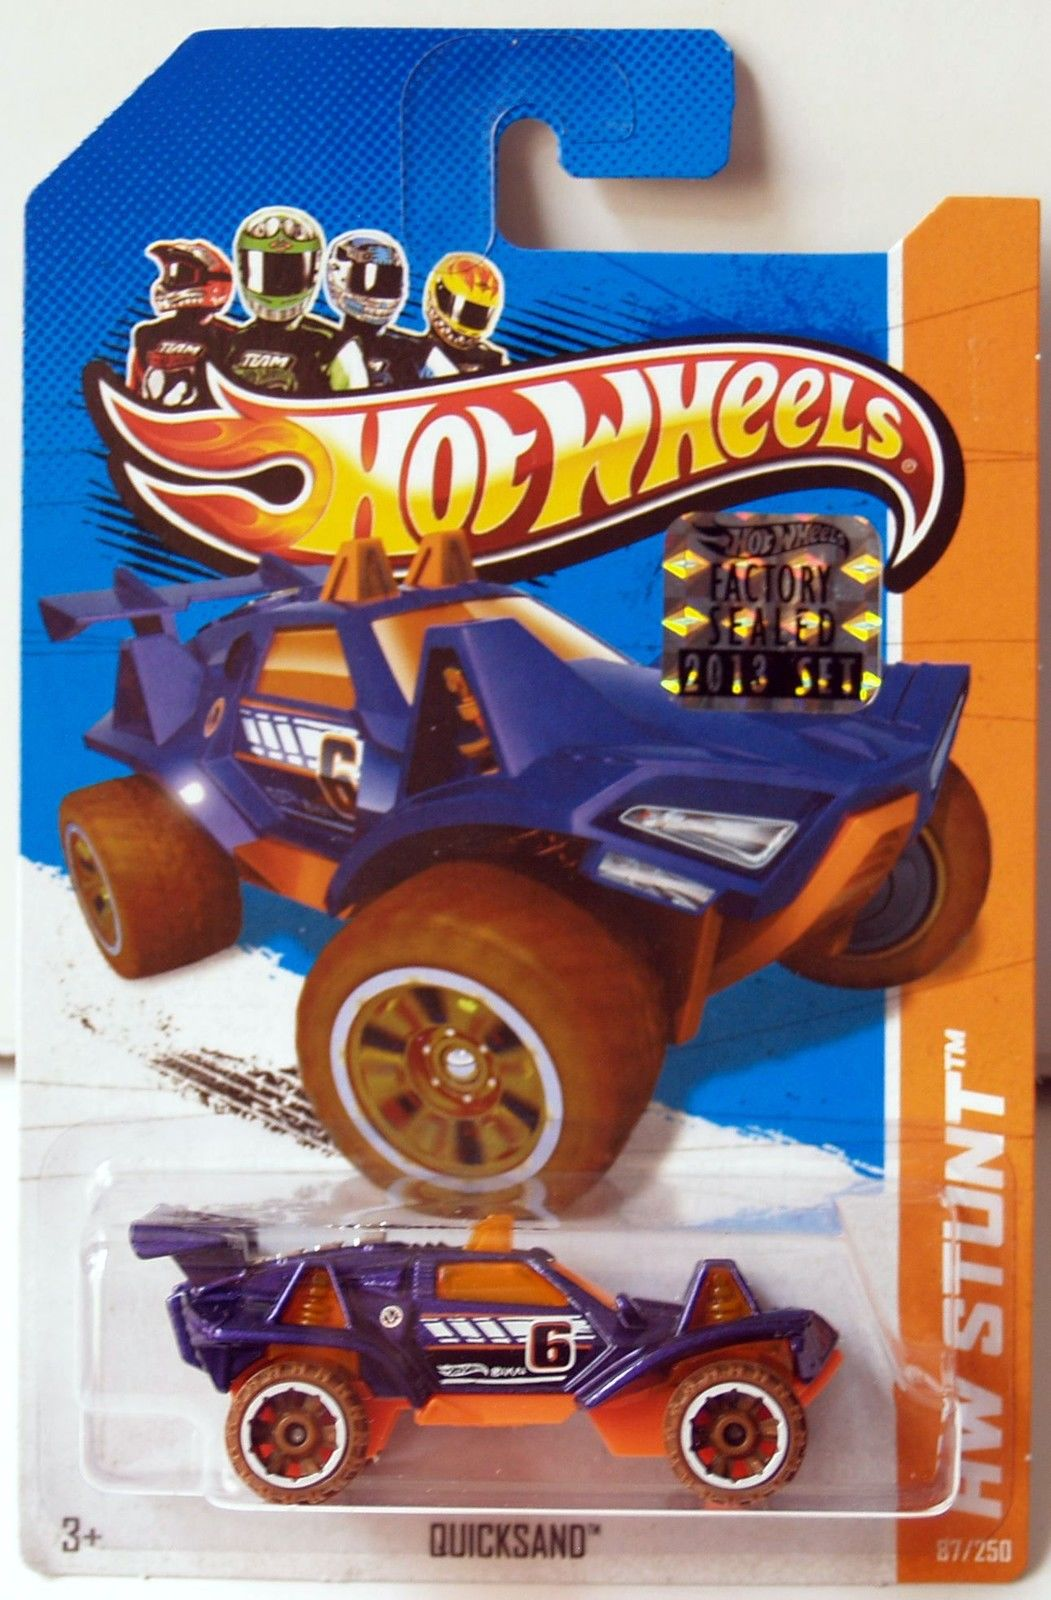 HOT WHEELS 2013 HW STUNT DESERT FORCE QUICKSAND PURPLE FACTORY SEALED